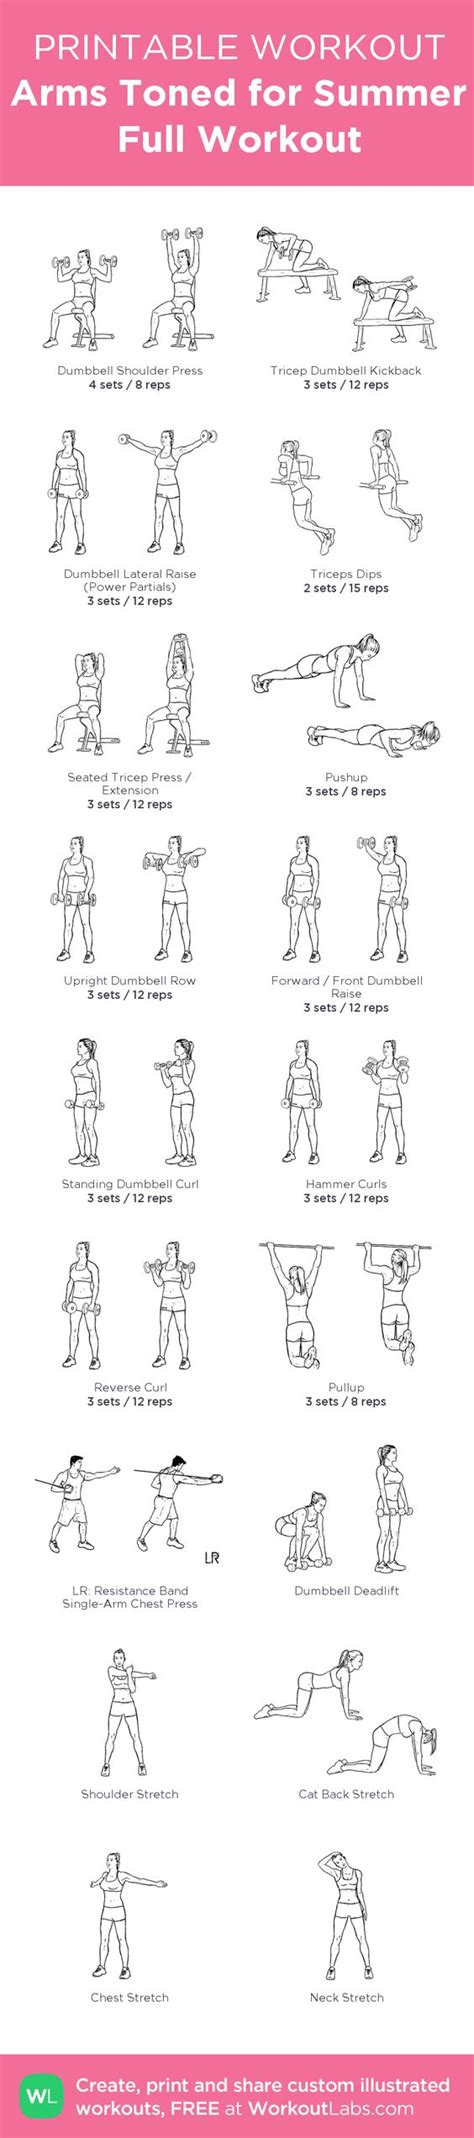 tricep and bicep workout 6 triceps shoulders workouts